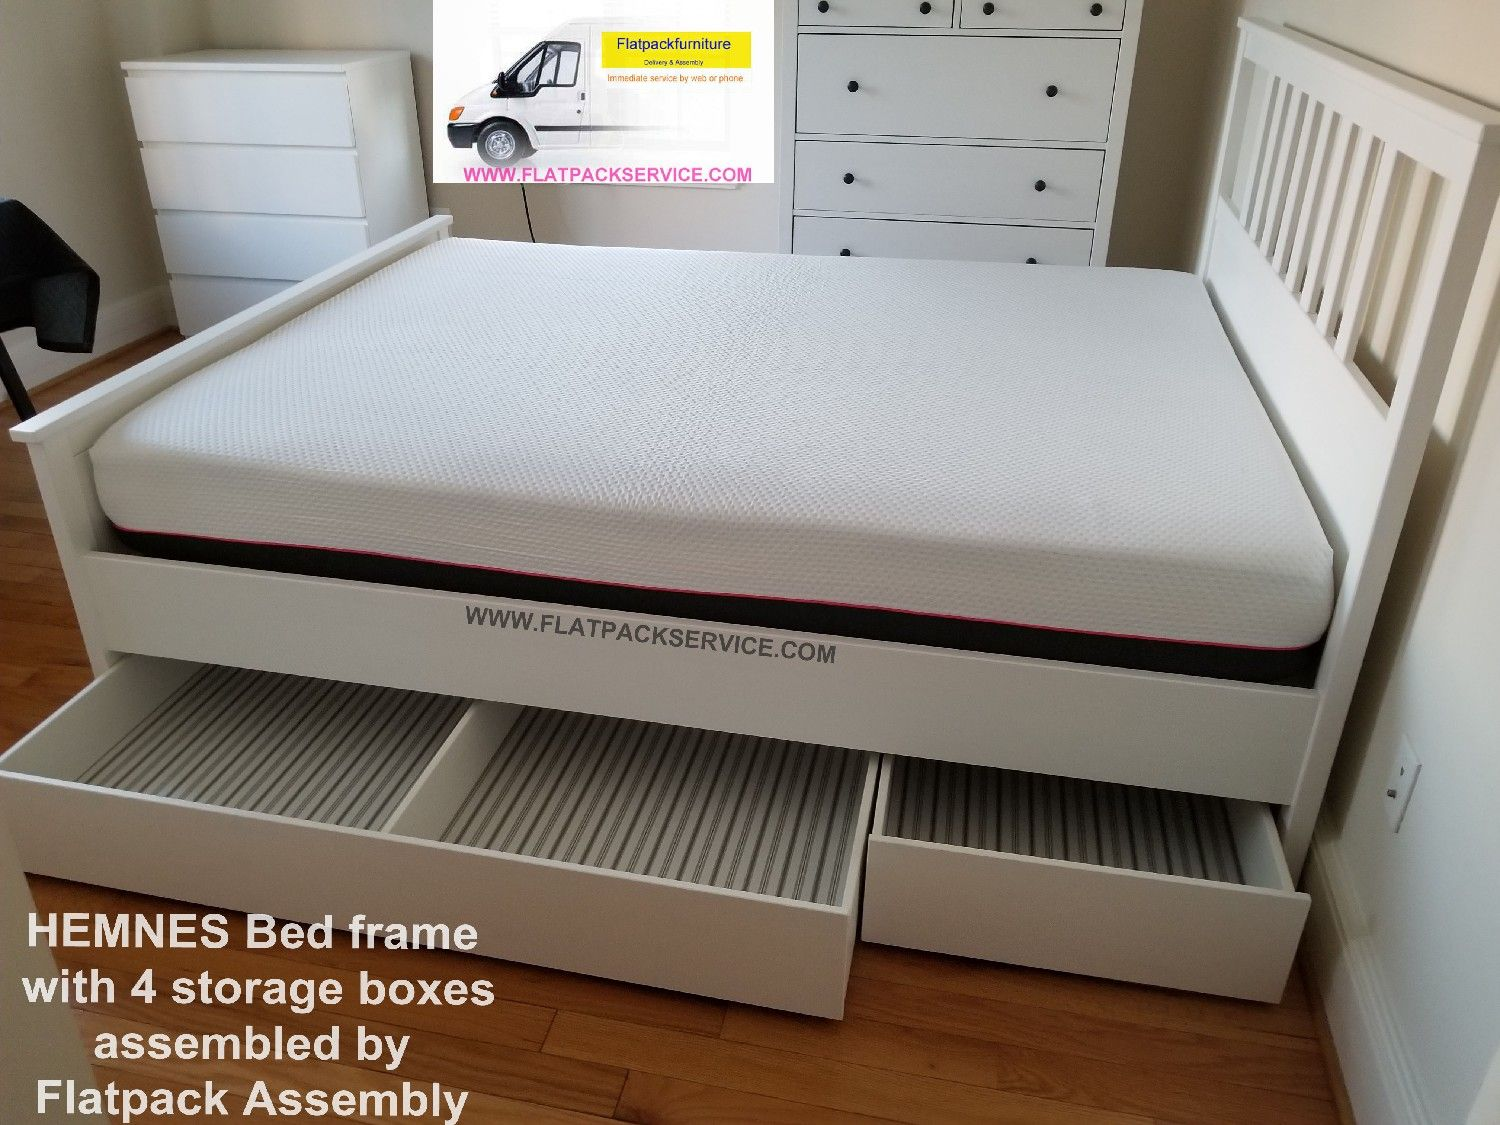 Ikea Hemnes Bed Frame With 4 Storage Boxes Article Number